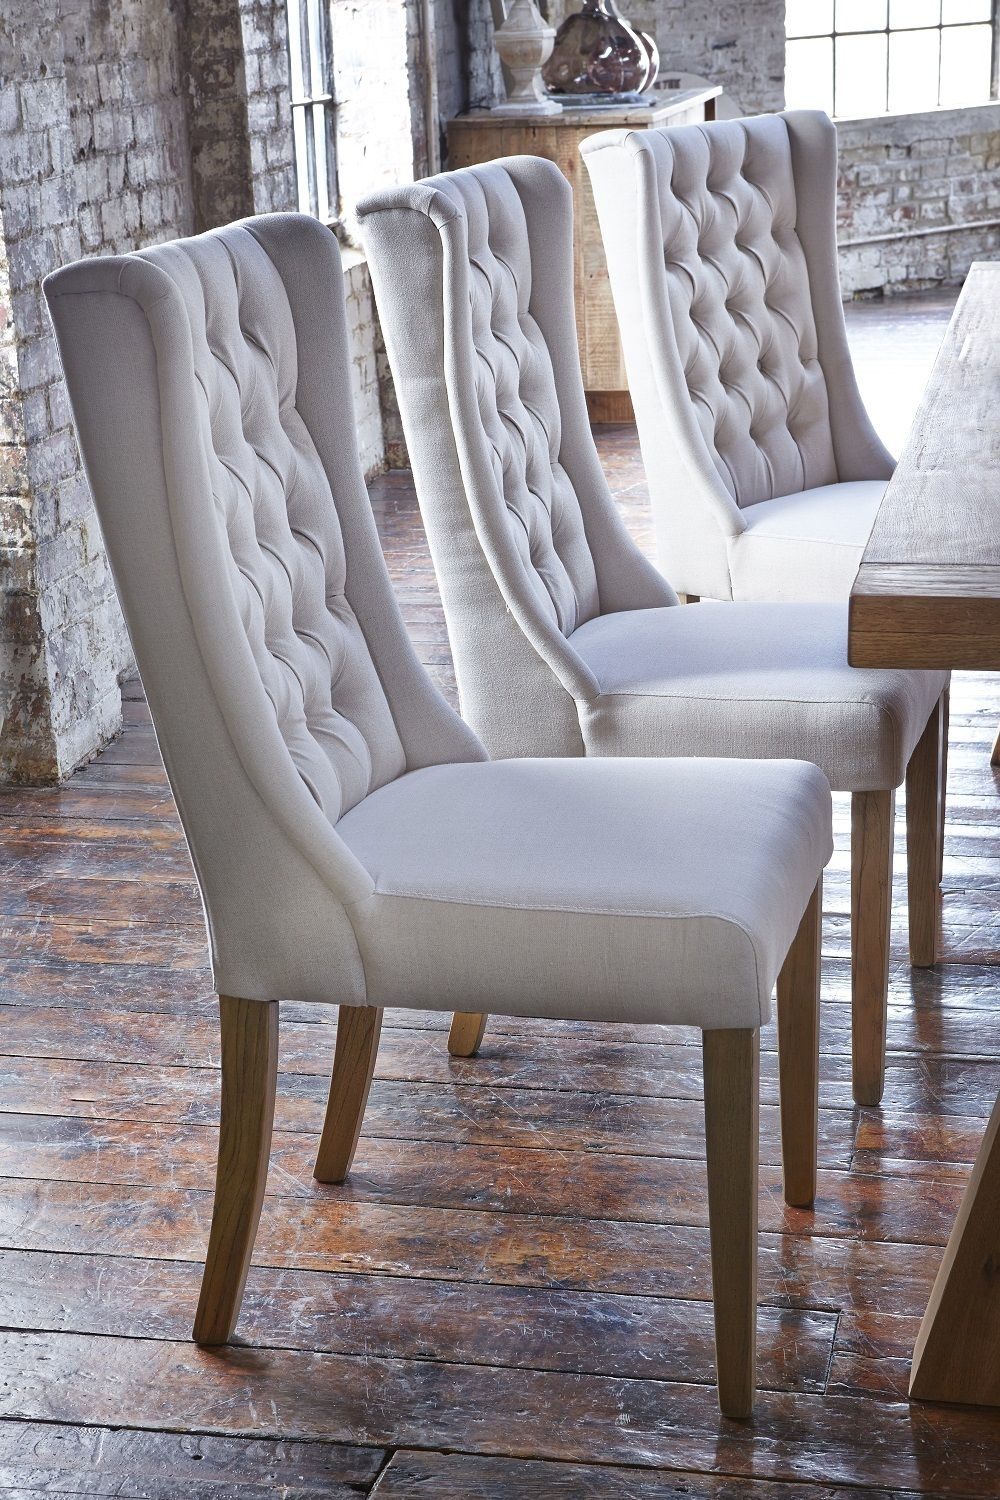 25 Exquisite Corner Breakfast Nook Ideas In Various Styles | Decor Within Most Recent Market 6 Piece Dining Sets With Host And Side Chairs (Photo 5 of 20)